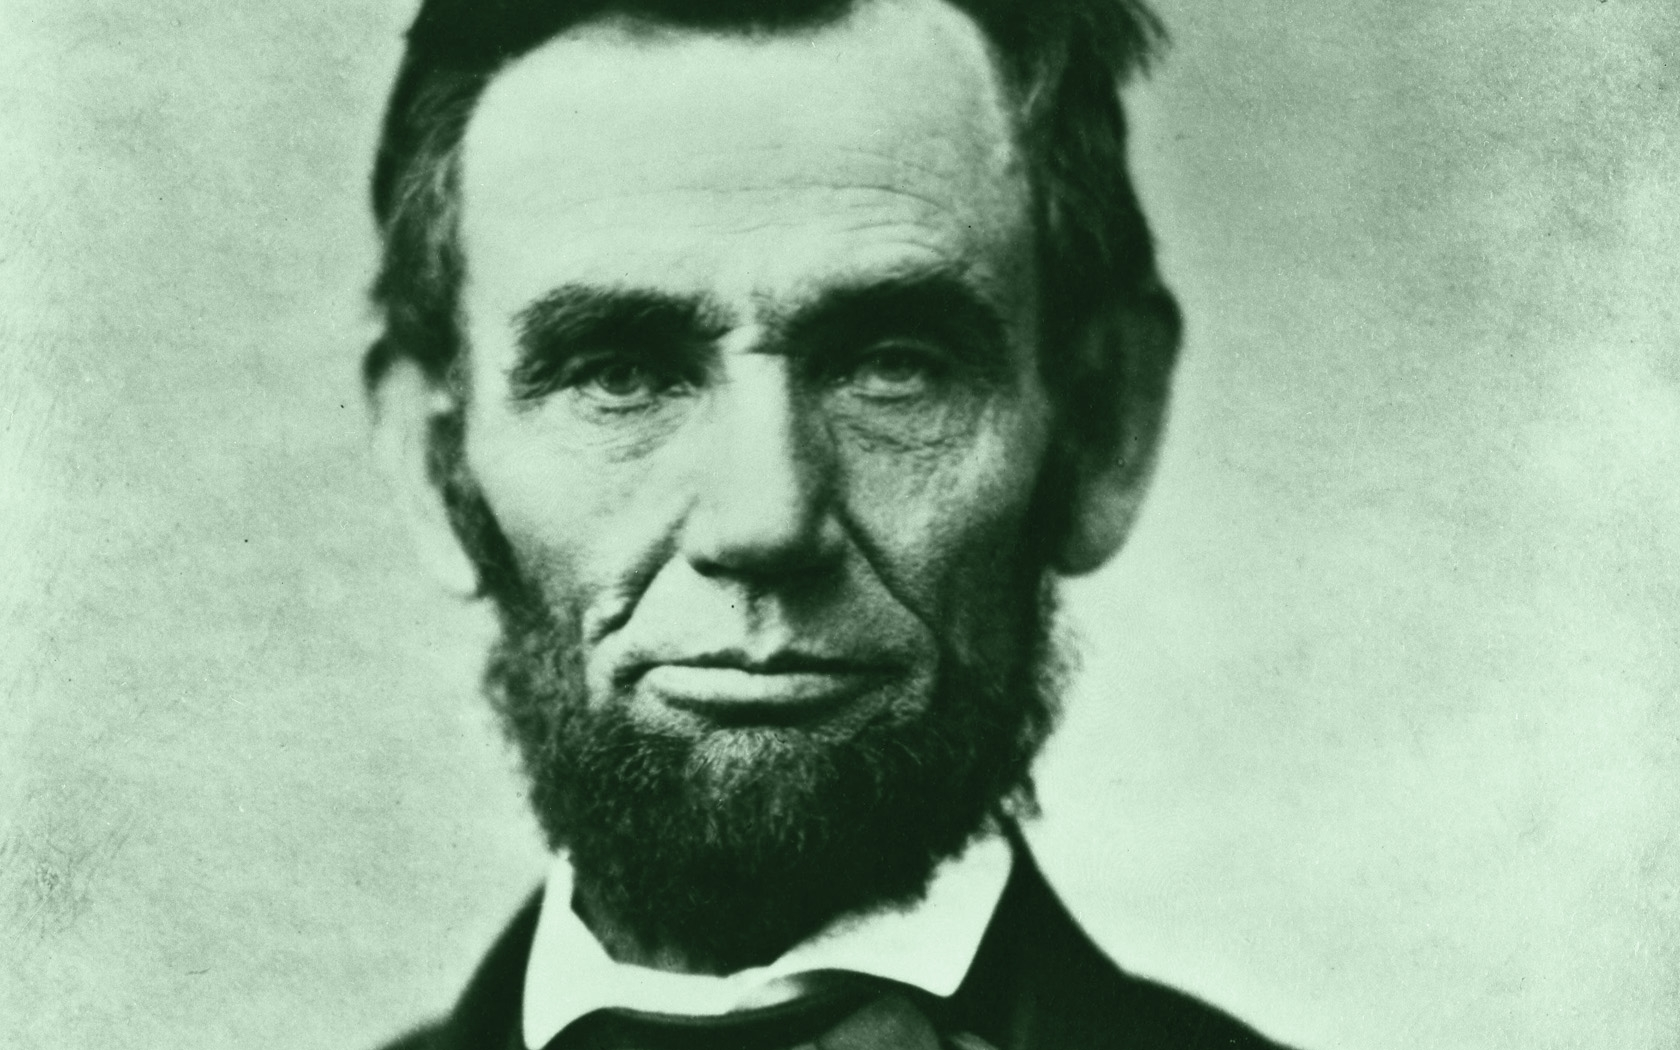 Download Wallpapers Download 960x800 abraham lincoln 1680x1050